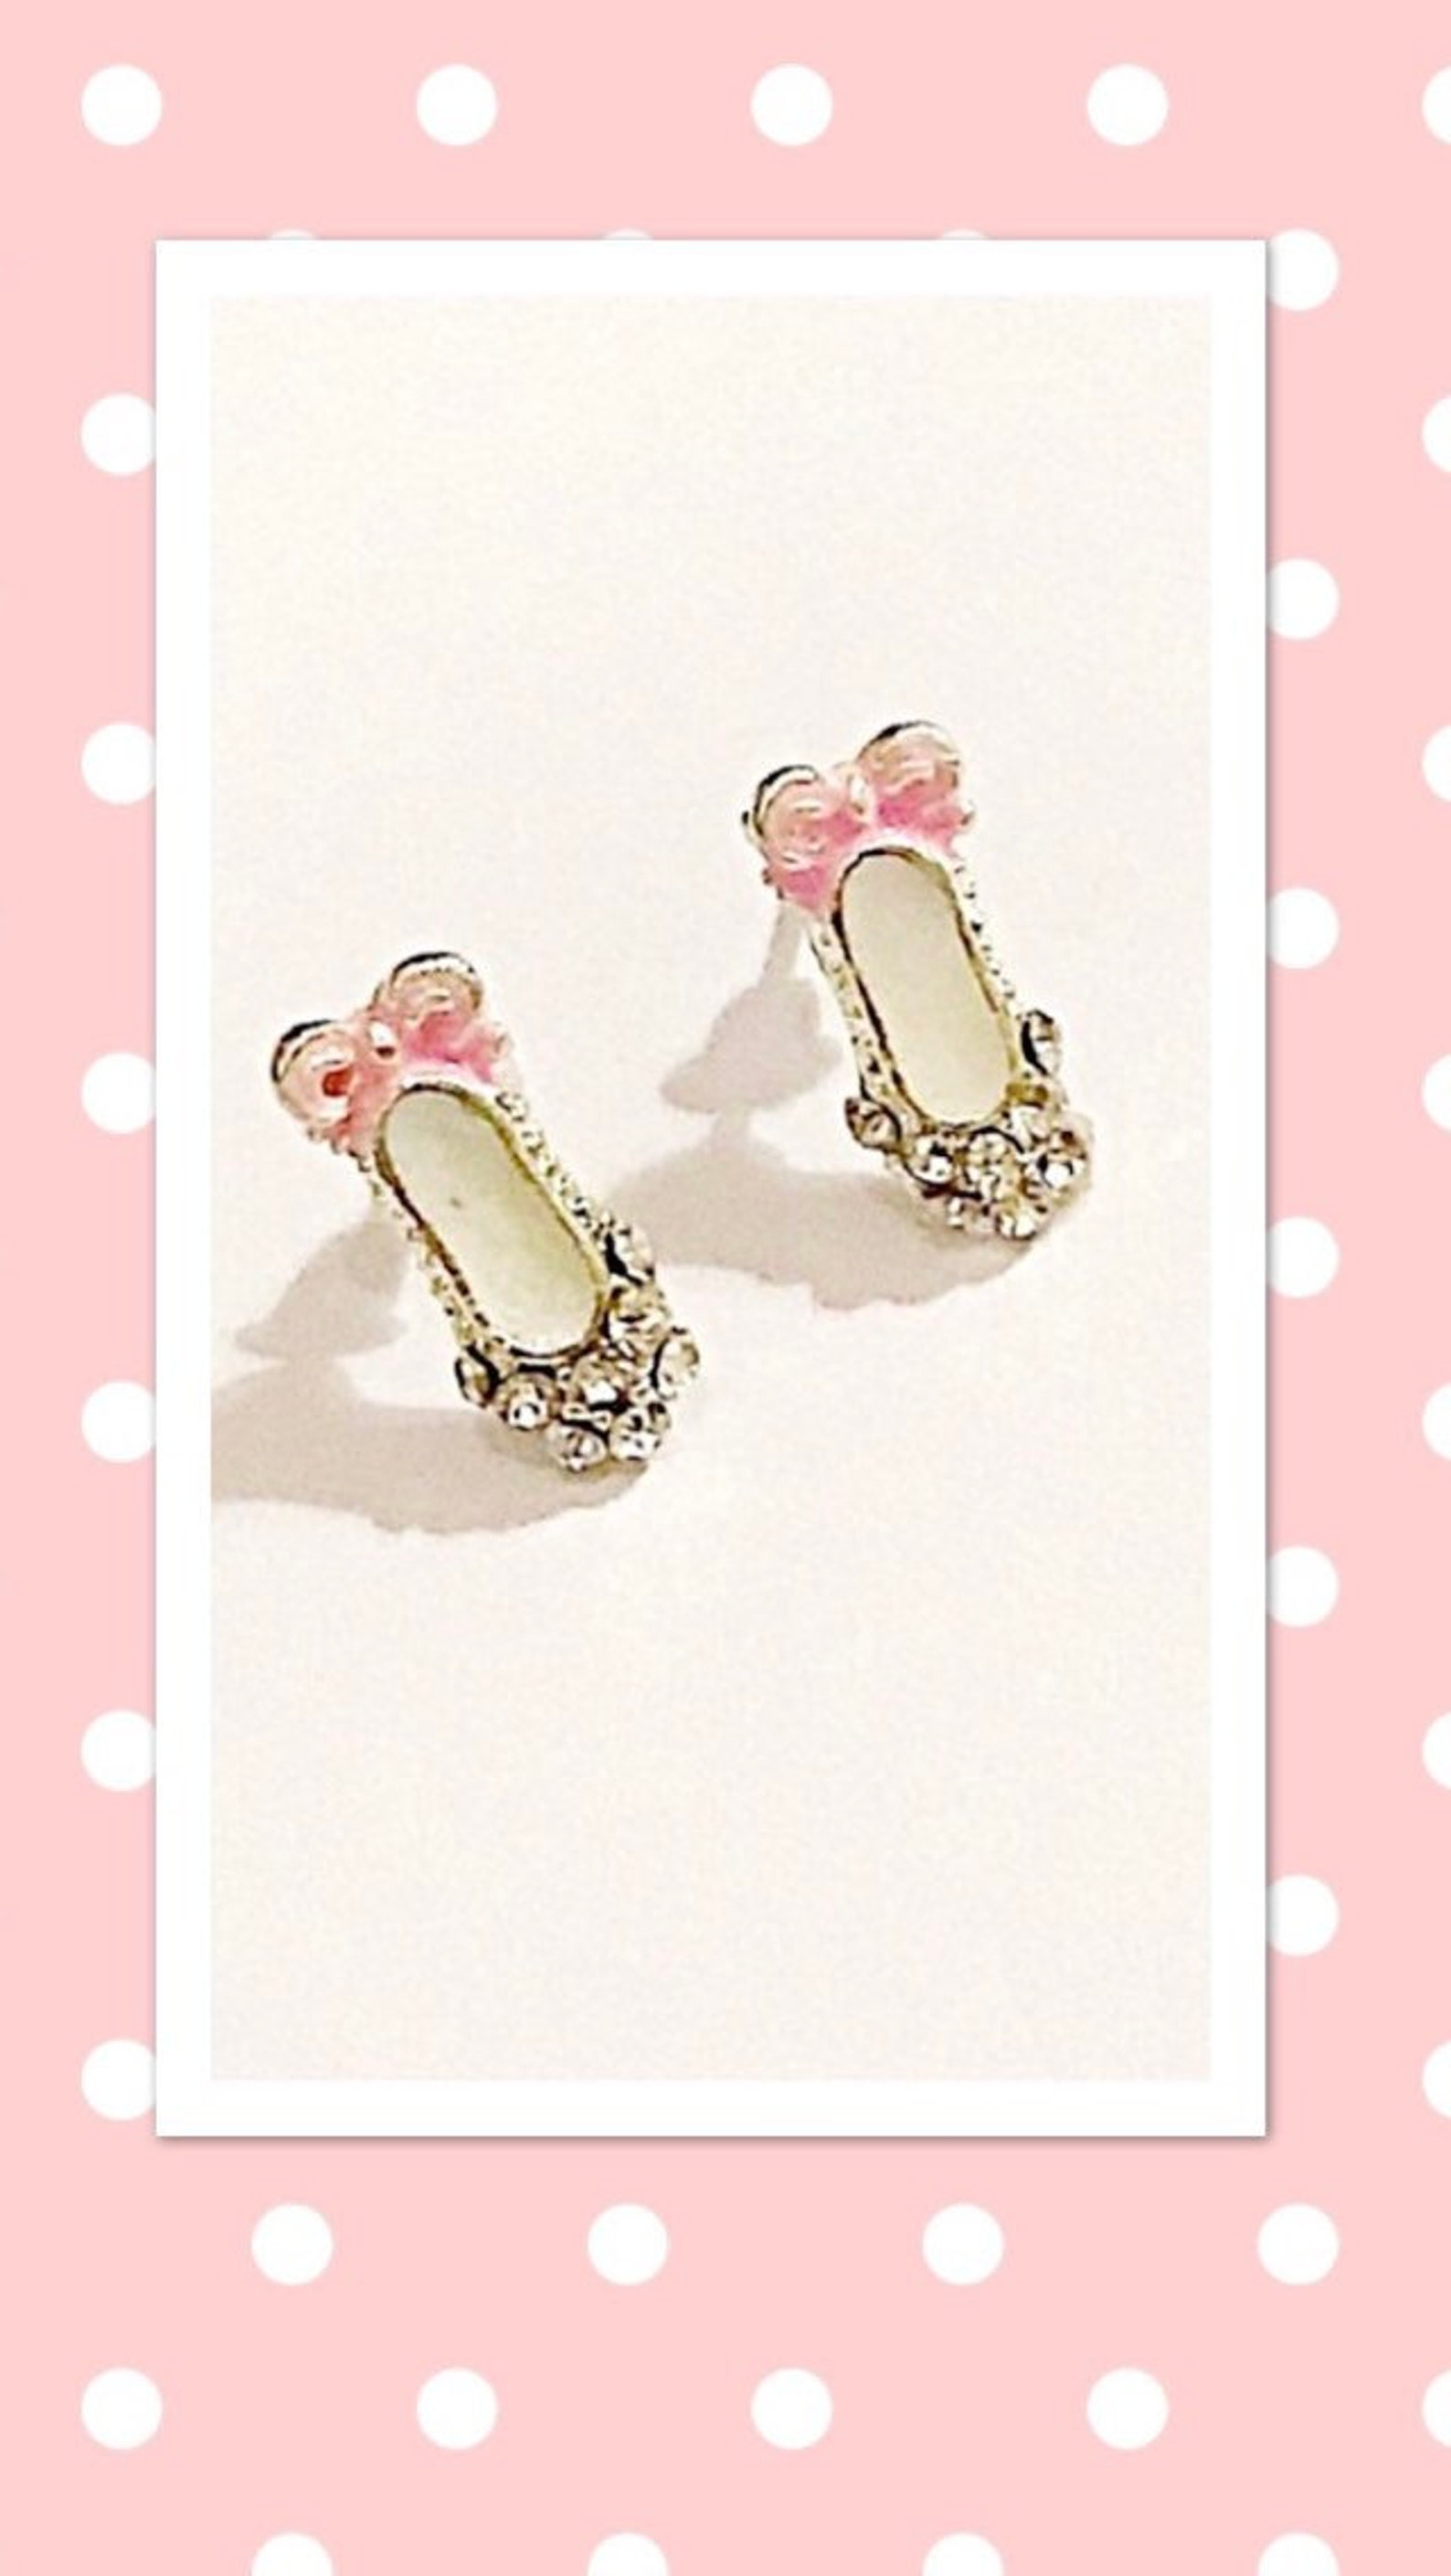 crystal ballet shoes stud earrings